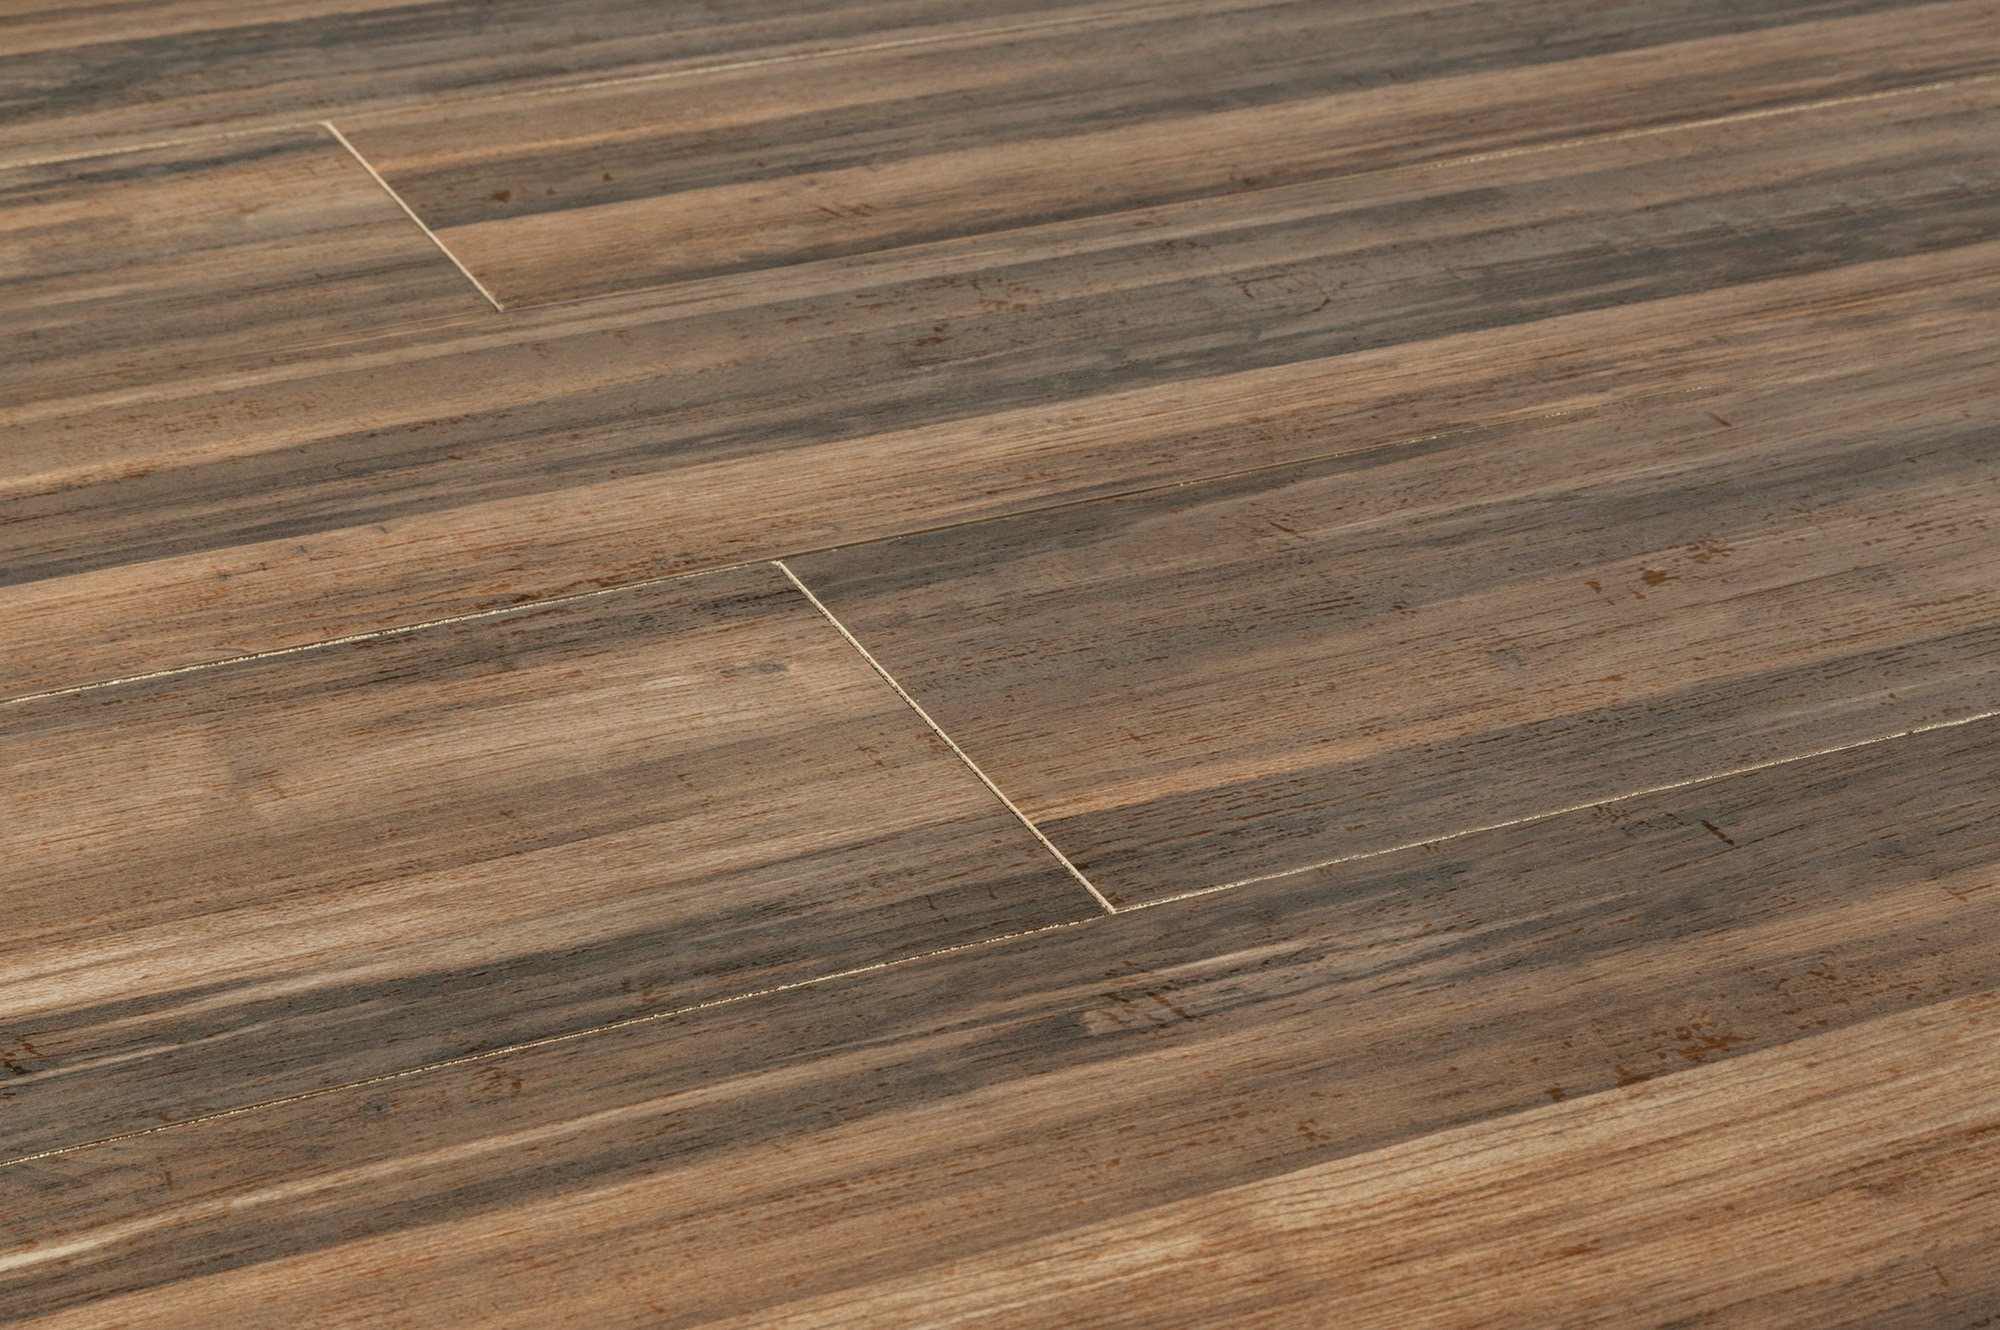 Torino porcelain tile eroded wood plank collection made in spain weathered 8 x45 matte Wood porcelain tile planks